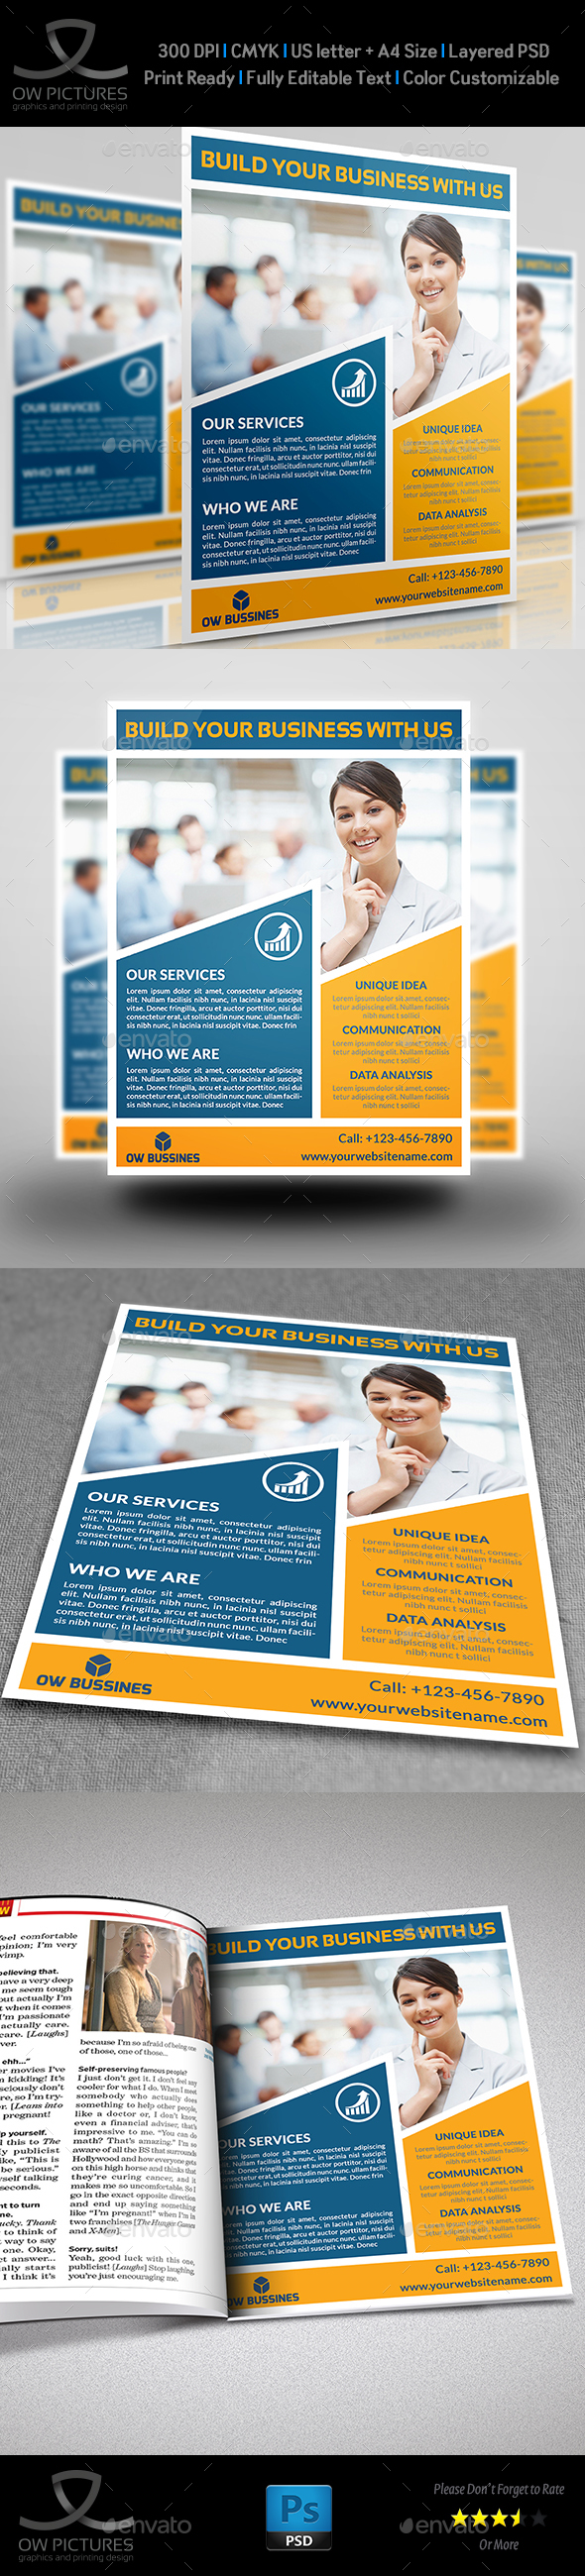 Corporate Business Flyer Template Vol.20 - Corporate Flyers